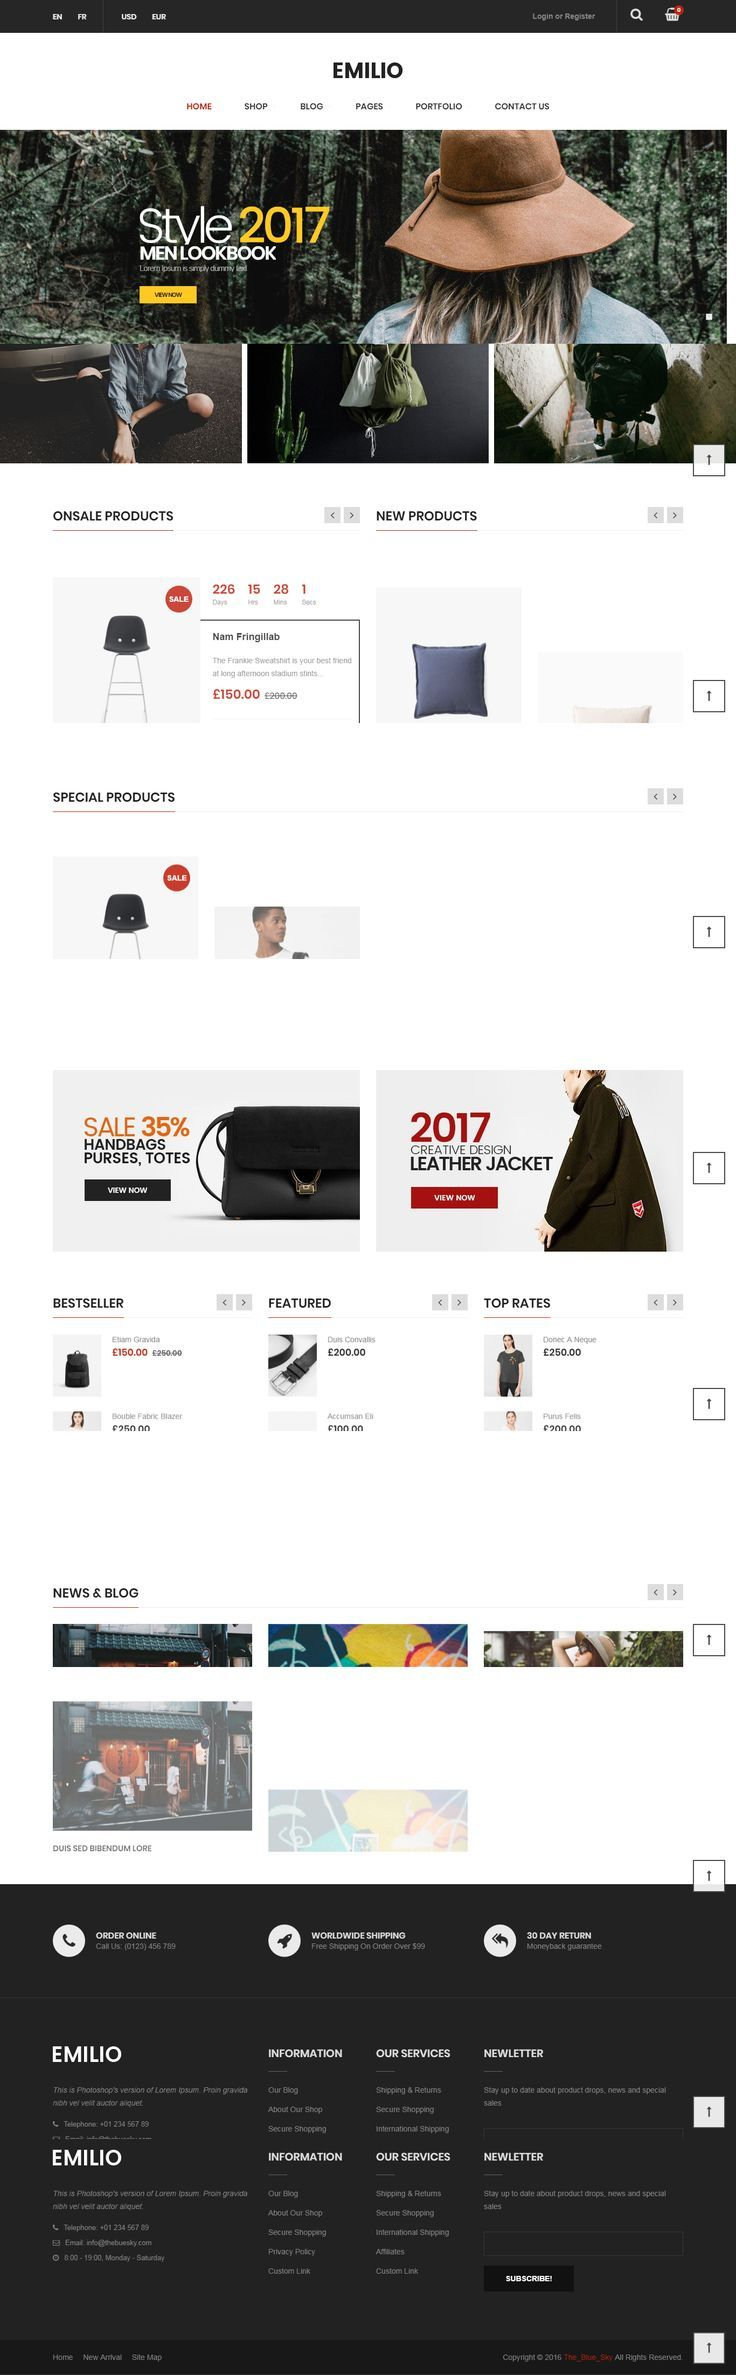 Emilio is suitable for e-commerce websites. We have included multiple layouts for home page, product page to give you best selections in customization. Emilio is not just a WooCommerce theme, we had a plan in order to develop Emilio for any kinds of websites: Business, Creative, News, Corporate, ... Emilio is a professional WordPress theme. It comes with a lot of features and variations: Responsive Layout, Mega Menu, Page Builder, Awesome Slider Revolution, Product Quick View, Easy One Click…